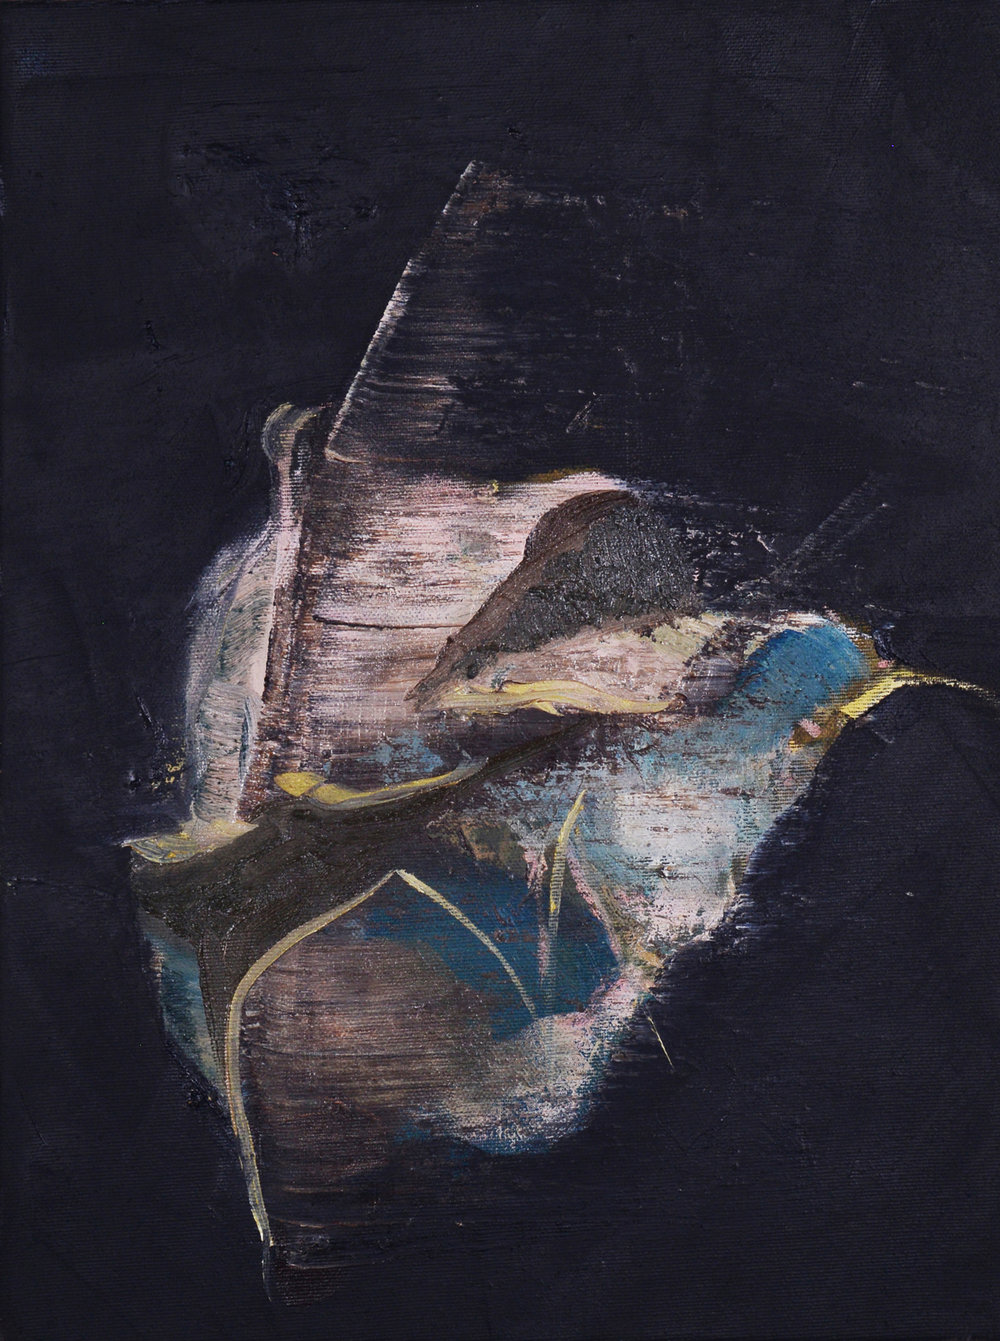 Flight, 2013, Oil on reversed black primed canvas, 40 x 30 cm